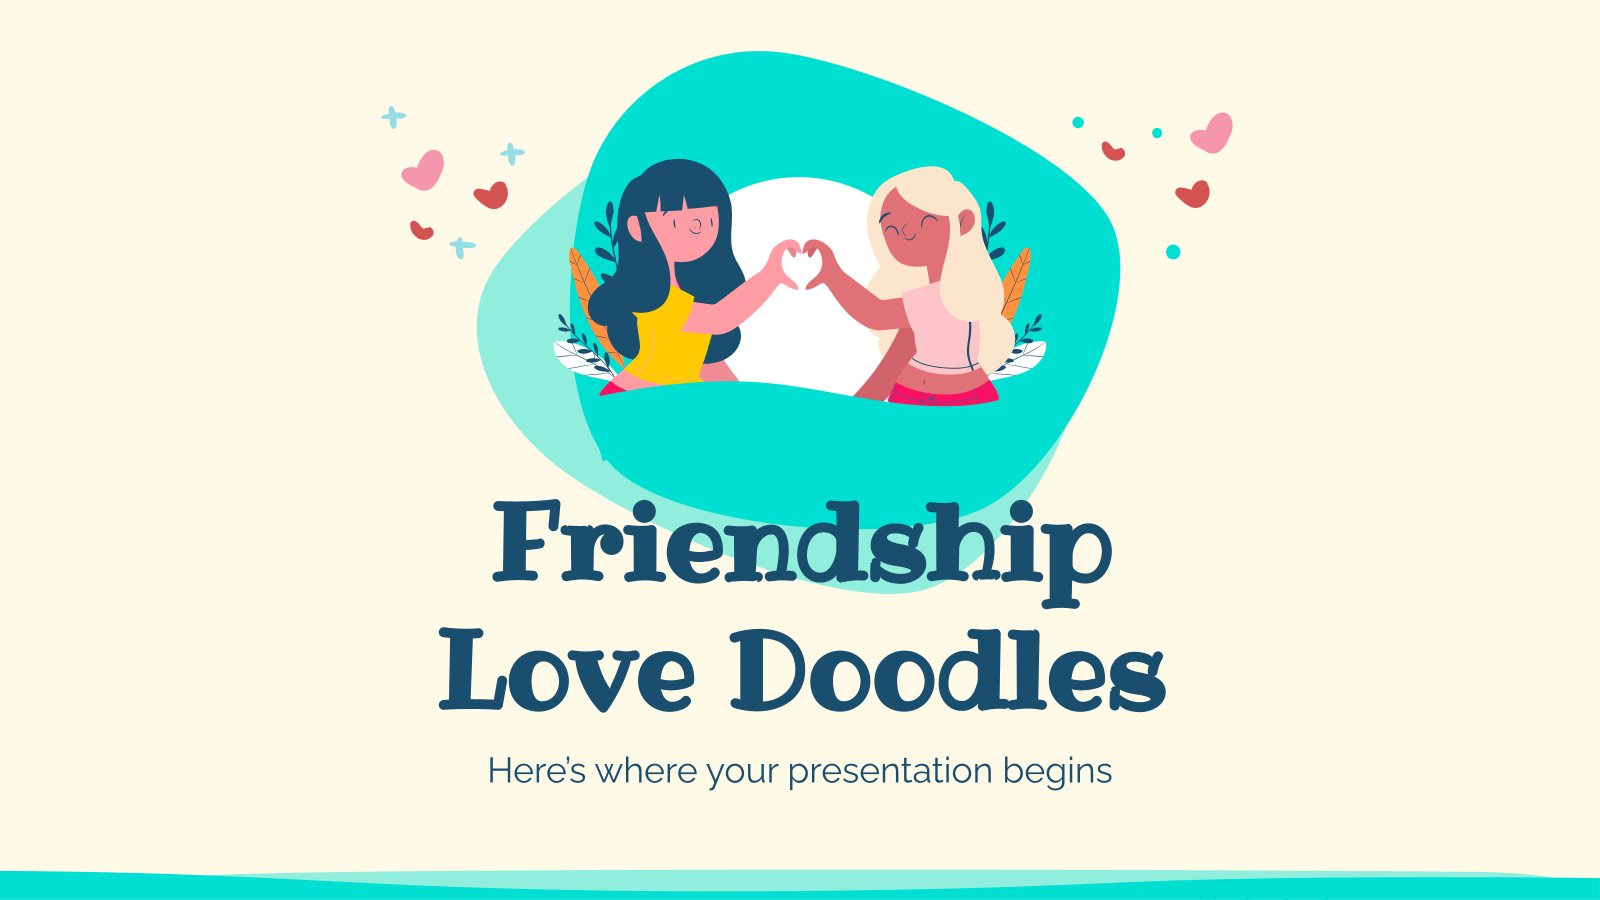 Friendship Love Doodles presentation template